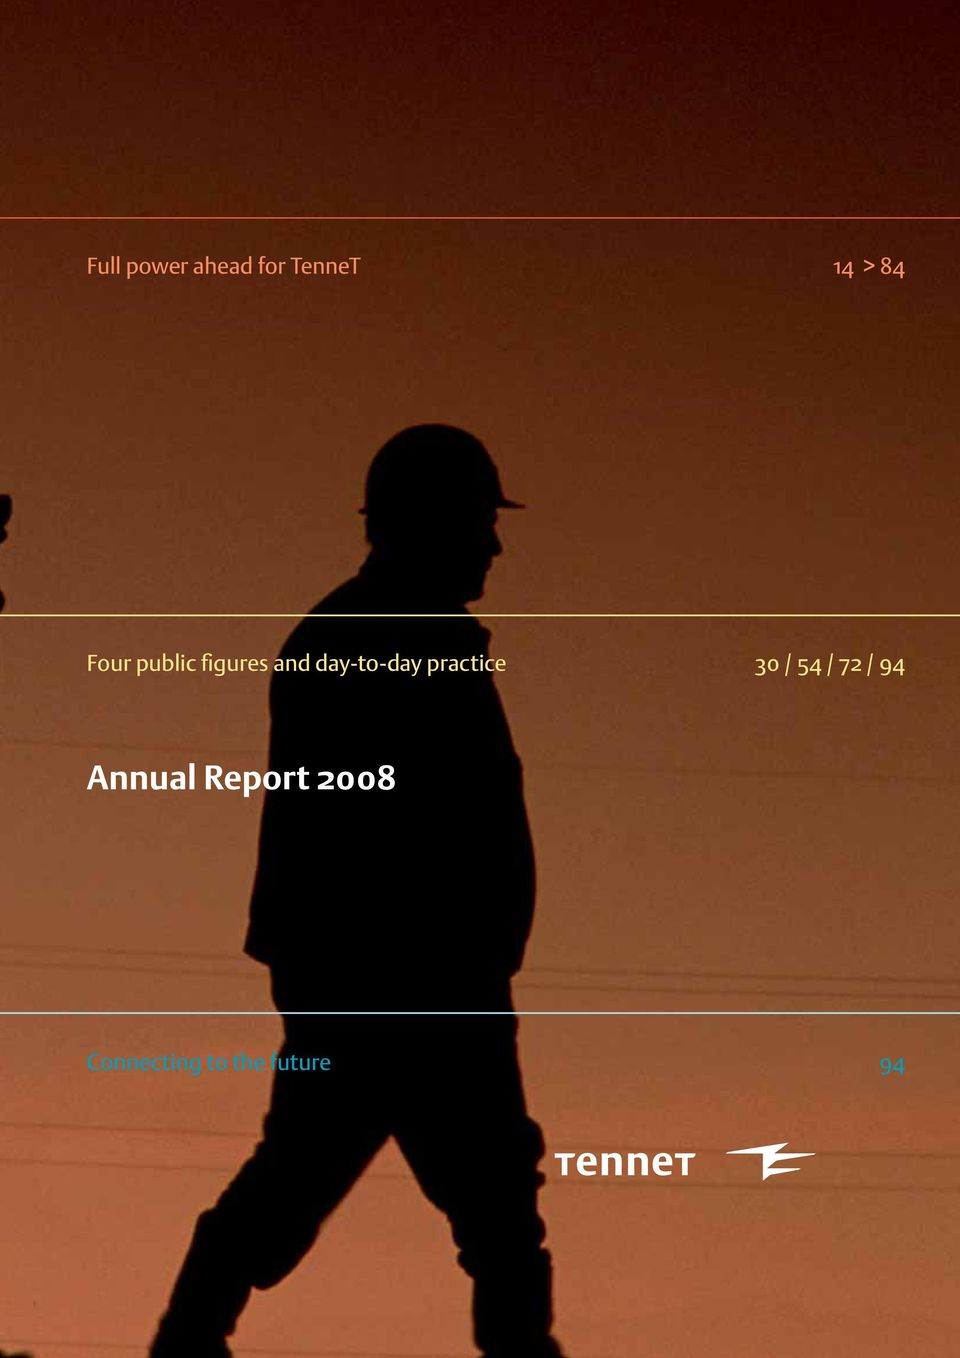 54 / 72 / 94 Annual Report 2008 Connecting to